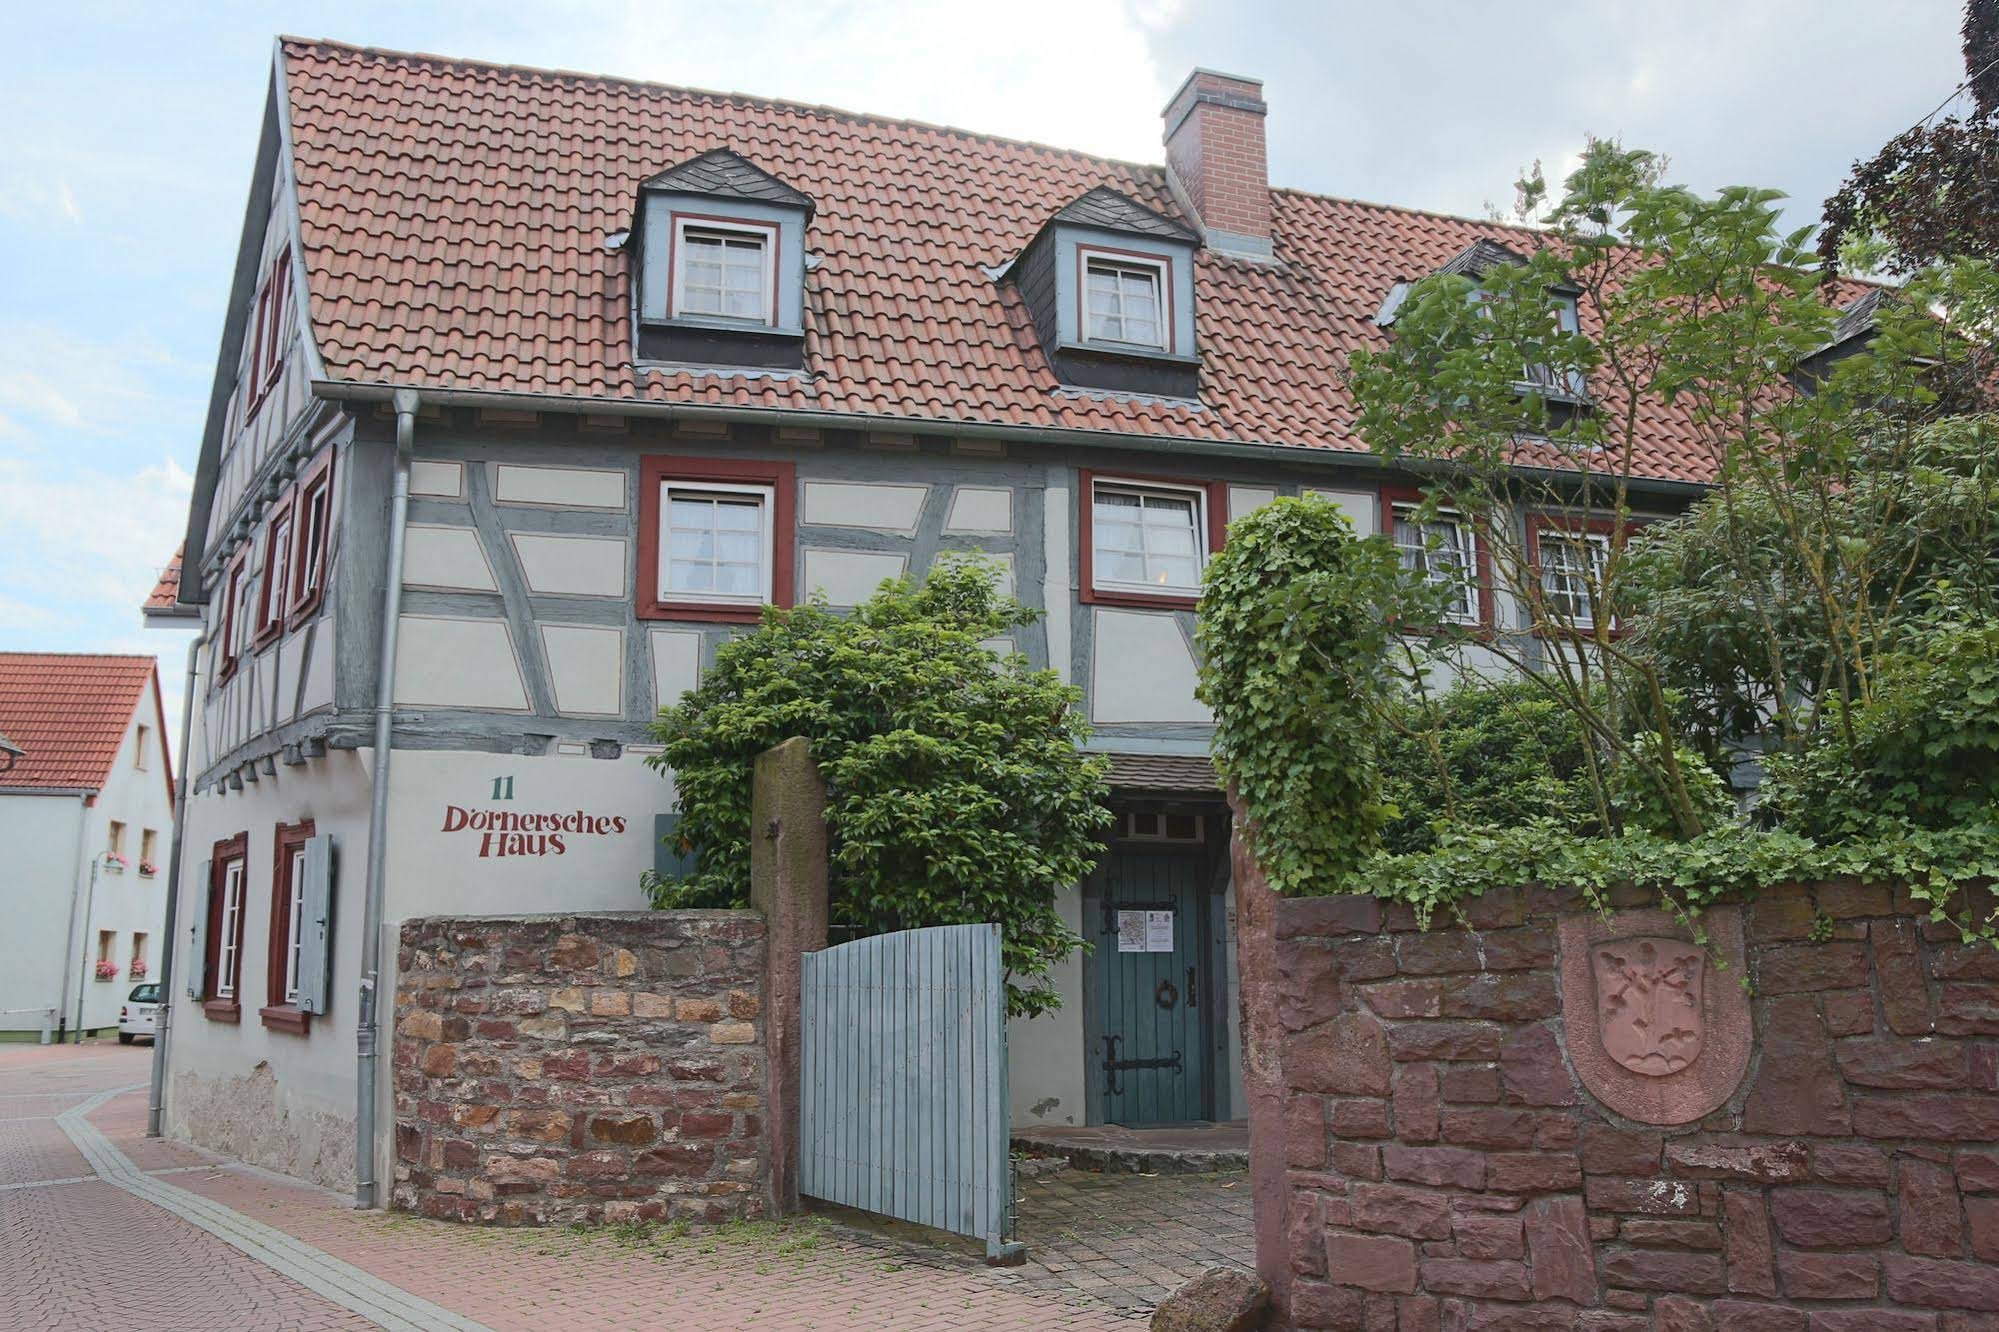 Doernersches Haus